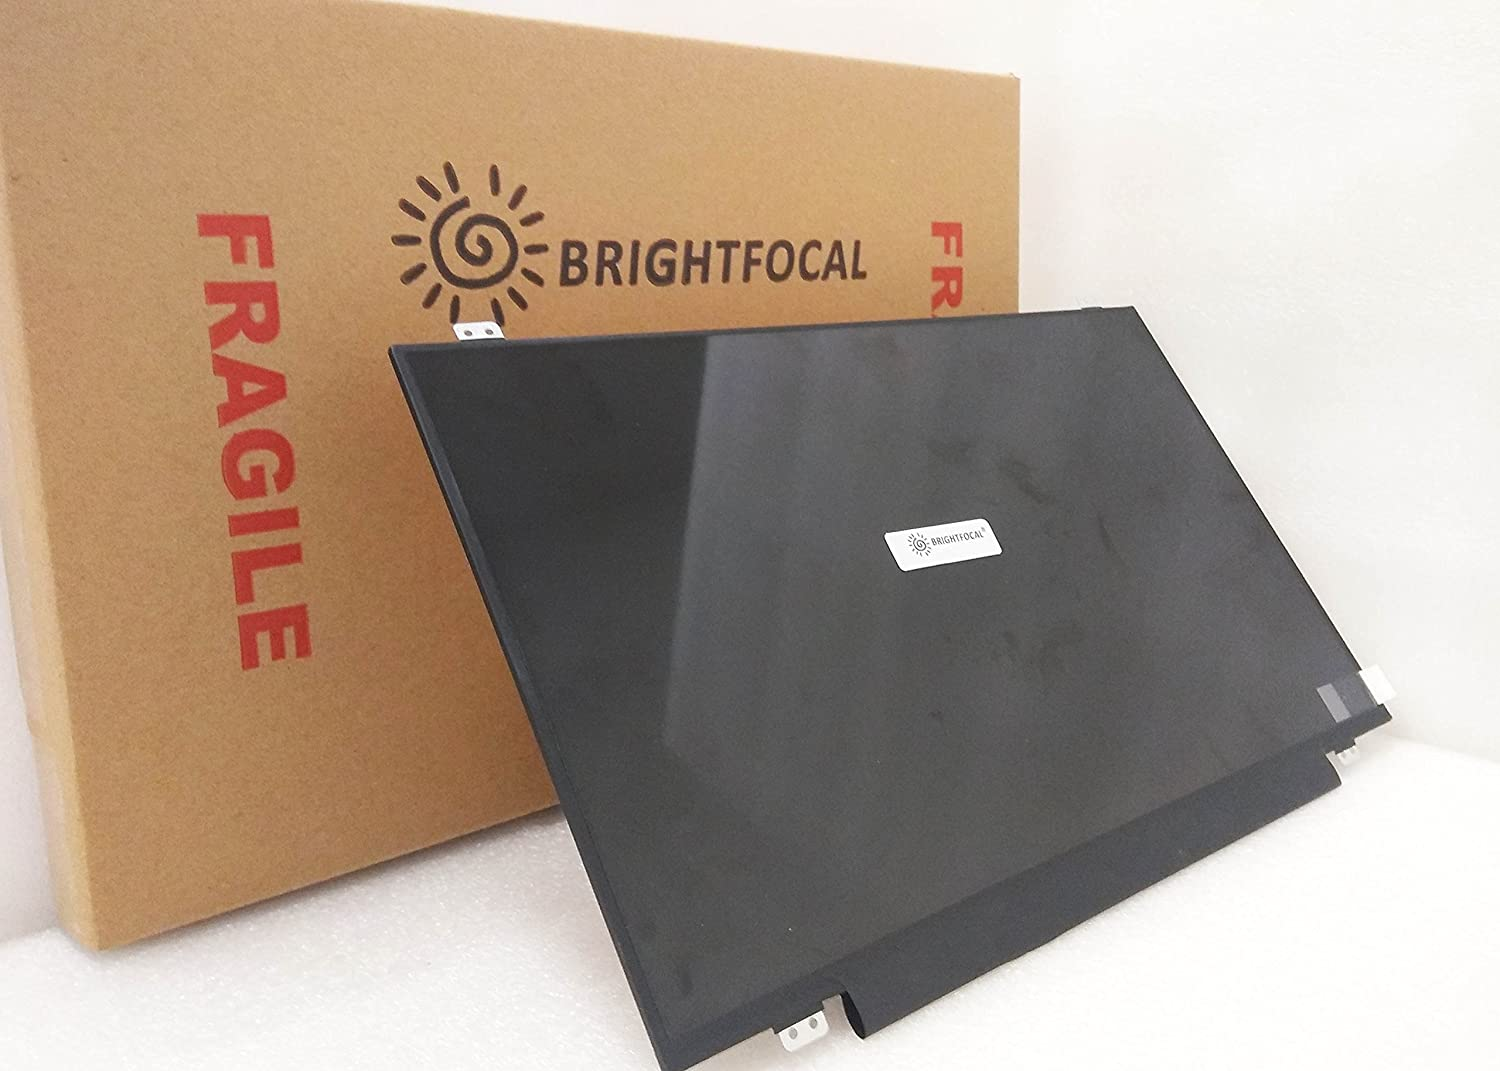 "BRIGHTFOCAL New Screen for HP 11 G3/G4/G5 Chromebook 11.6"" LED LCD 762229-007 WXGA HD LED LCD Replacement LCD Screen Display"